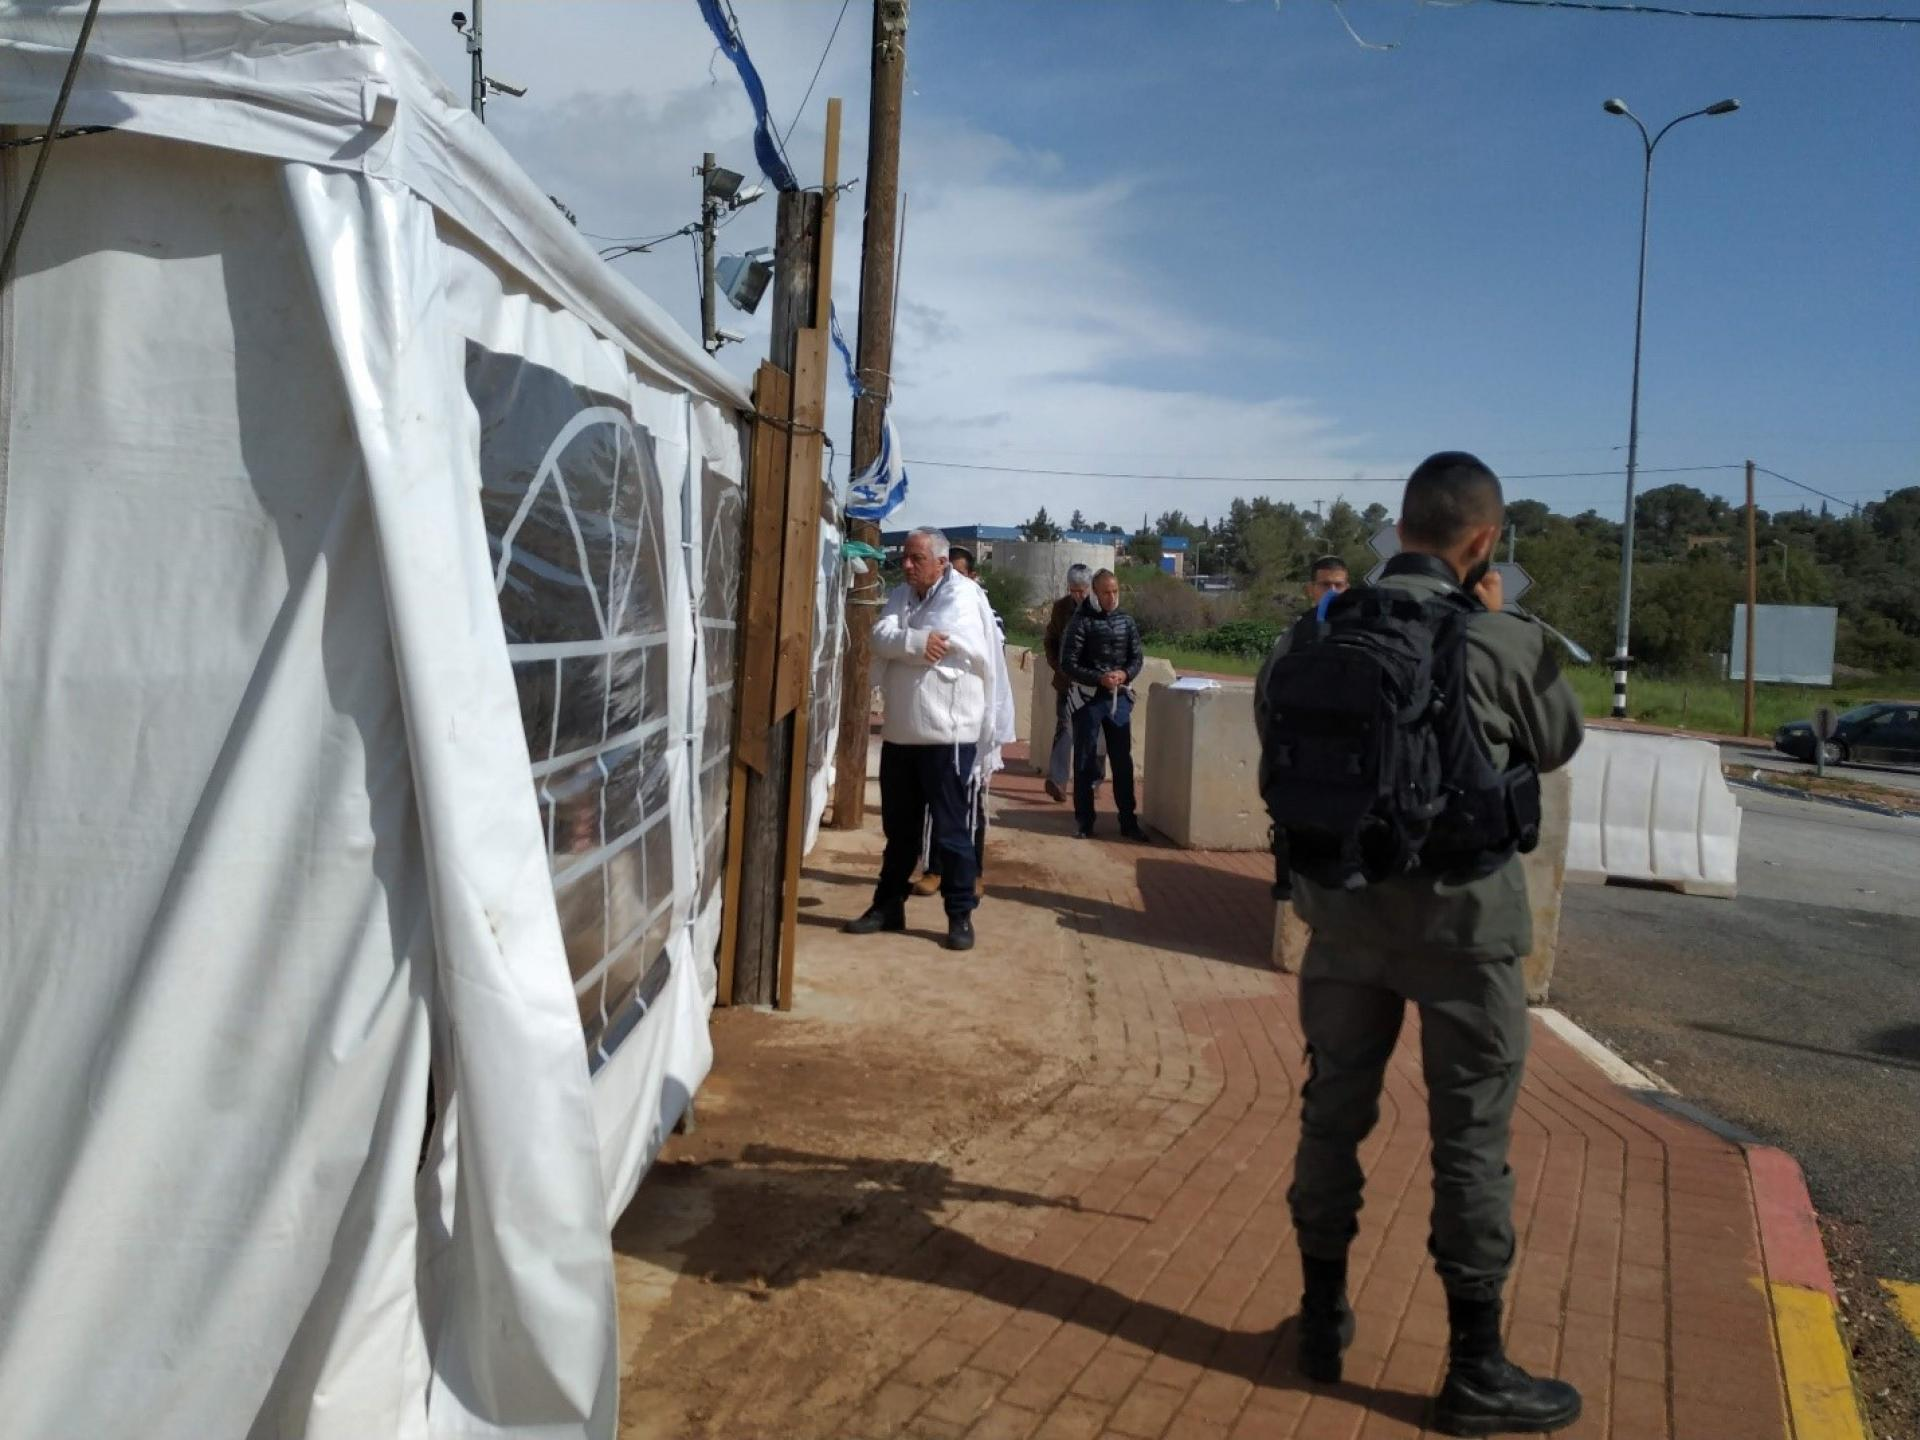 Halameesh Junction: a soldier guarding the entrance of a provisional synagogue tent